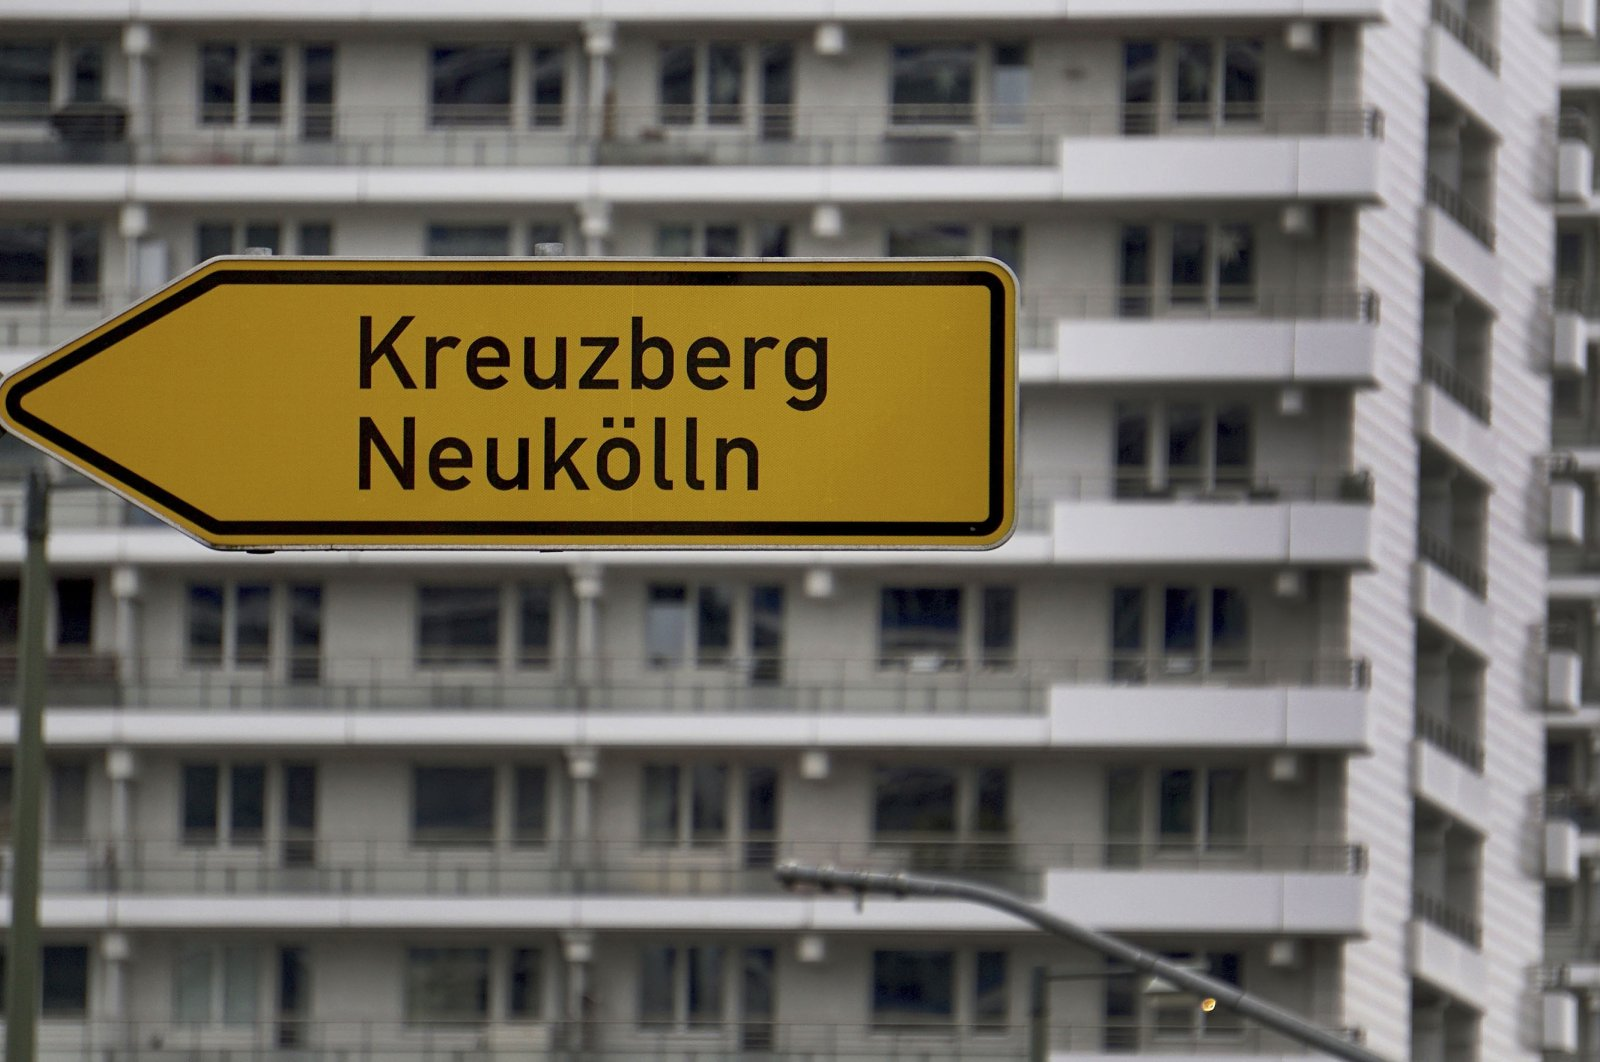 A traffic sign pointing to the Berlin districts of Neukolln and Kreuzberg in front of apartment buildings at the Leipziger Strasse between the Potsdamer Platz (Potsdam Square) and the Alexander Platz (Alexander Square) in Berlin, Germany, Jan. 30, 2020. (AP Photo)